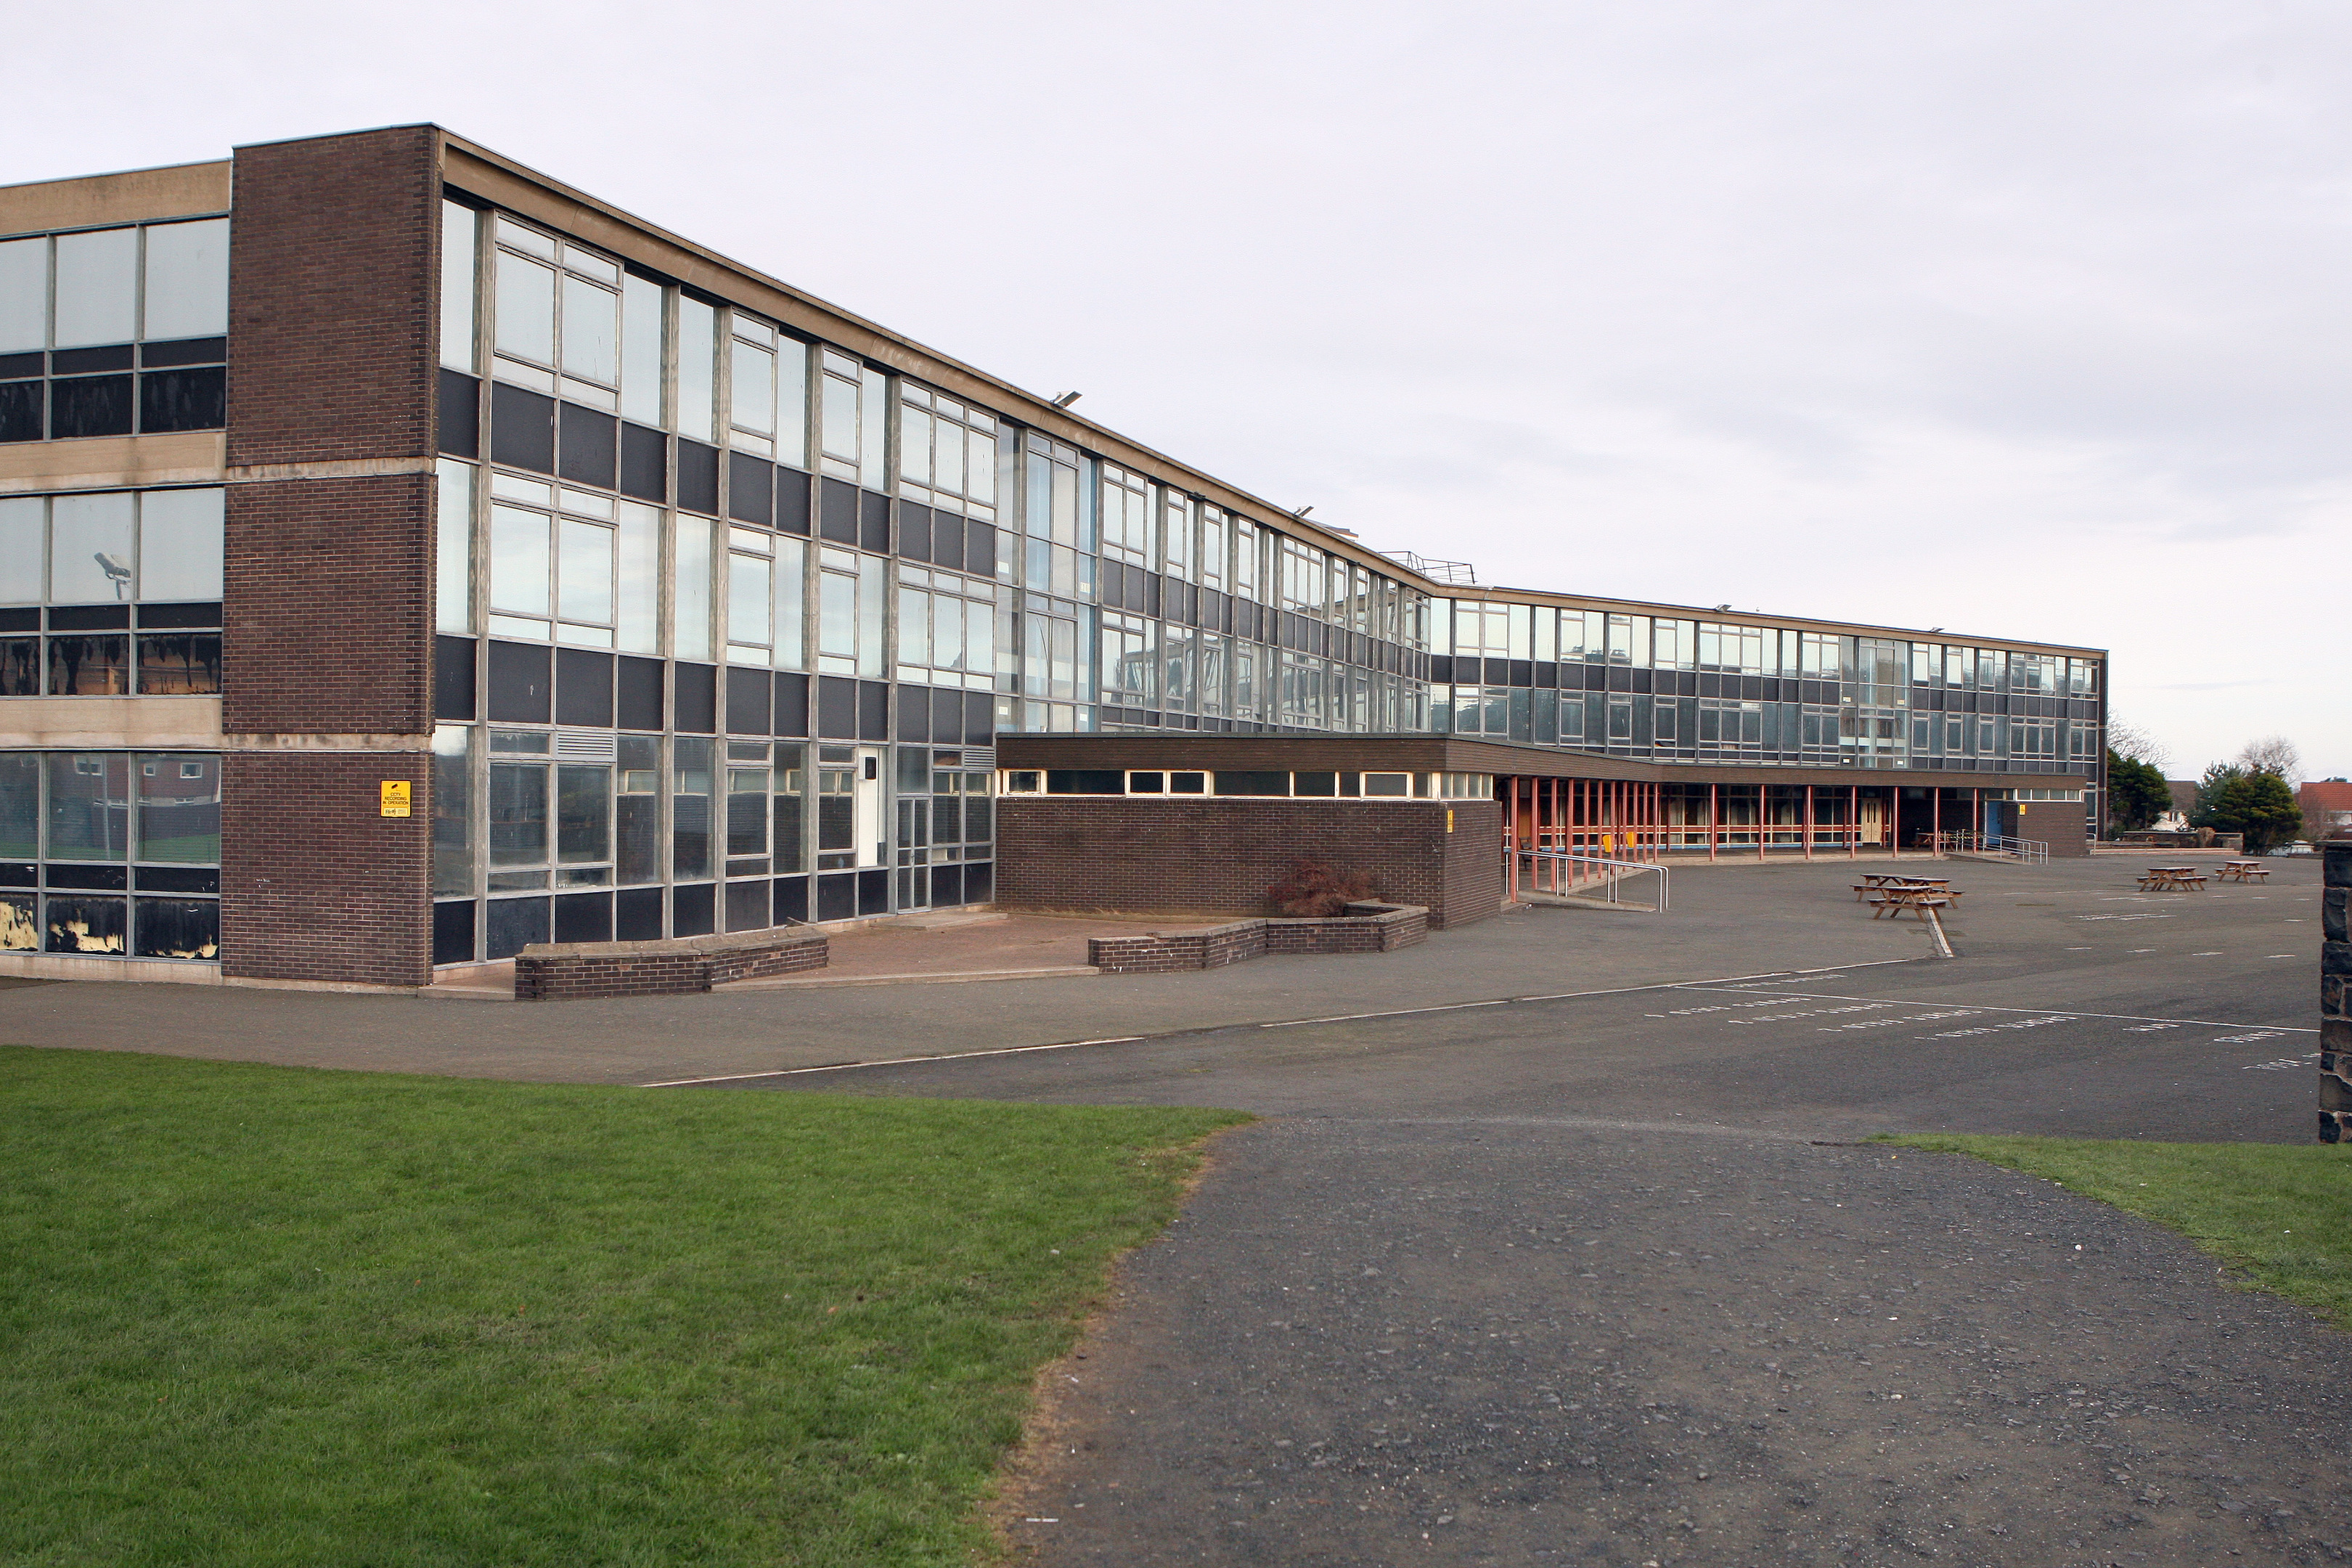 The current Madras College at Kilrymont is being replaced